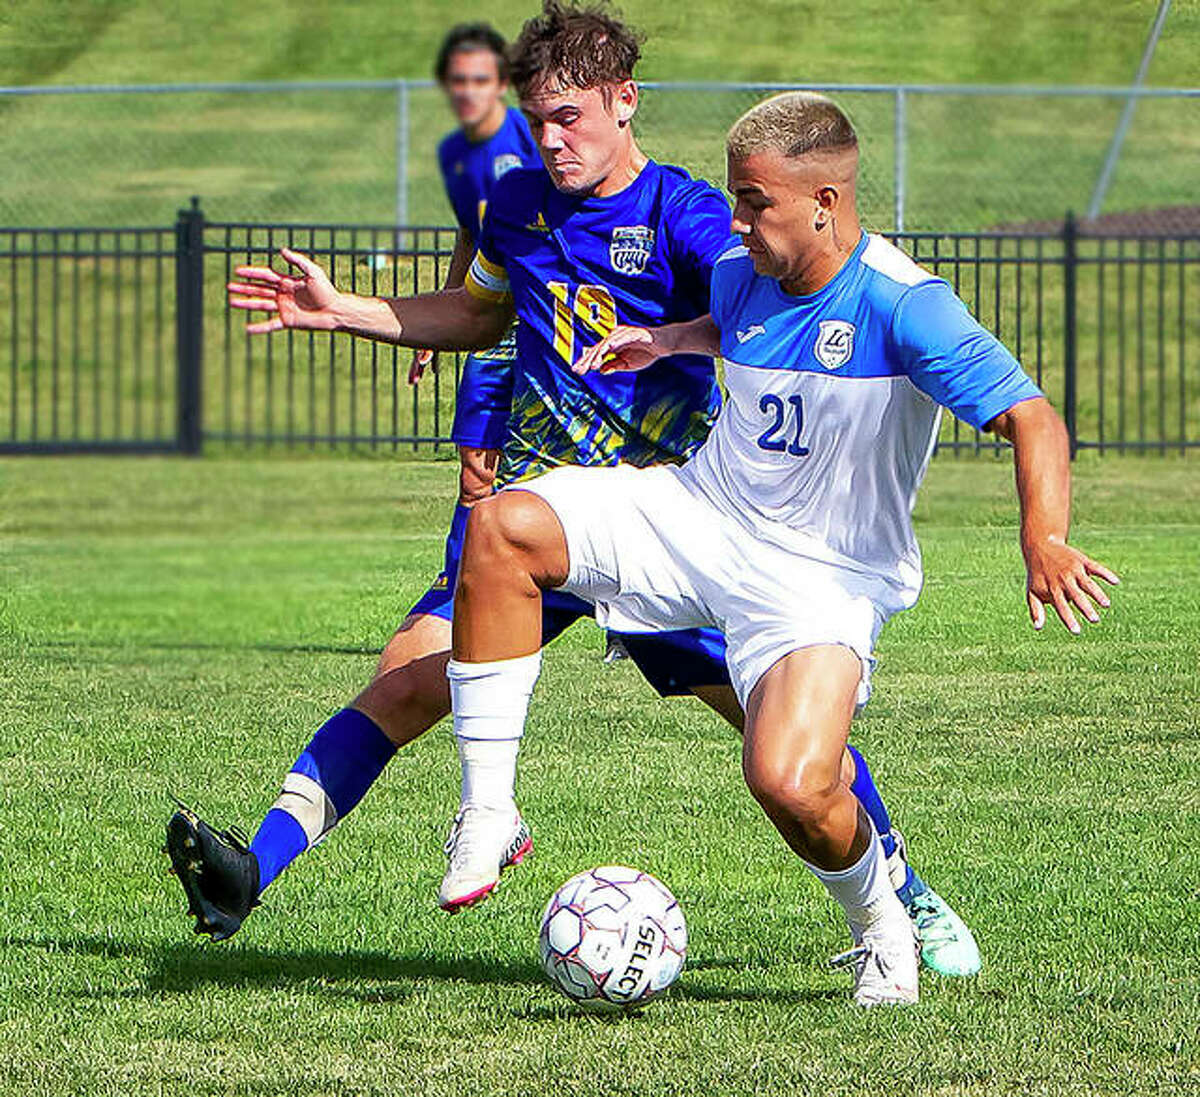 LCCC's Eduardo Rodriguez (21) scored a pair of first-half goals and helped the Trailblazers to a 4-1 win at Kankakee College Sunday. The 13th-ranked LCCC men are 10-3 on the season.